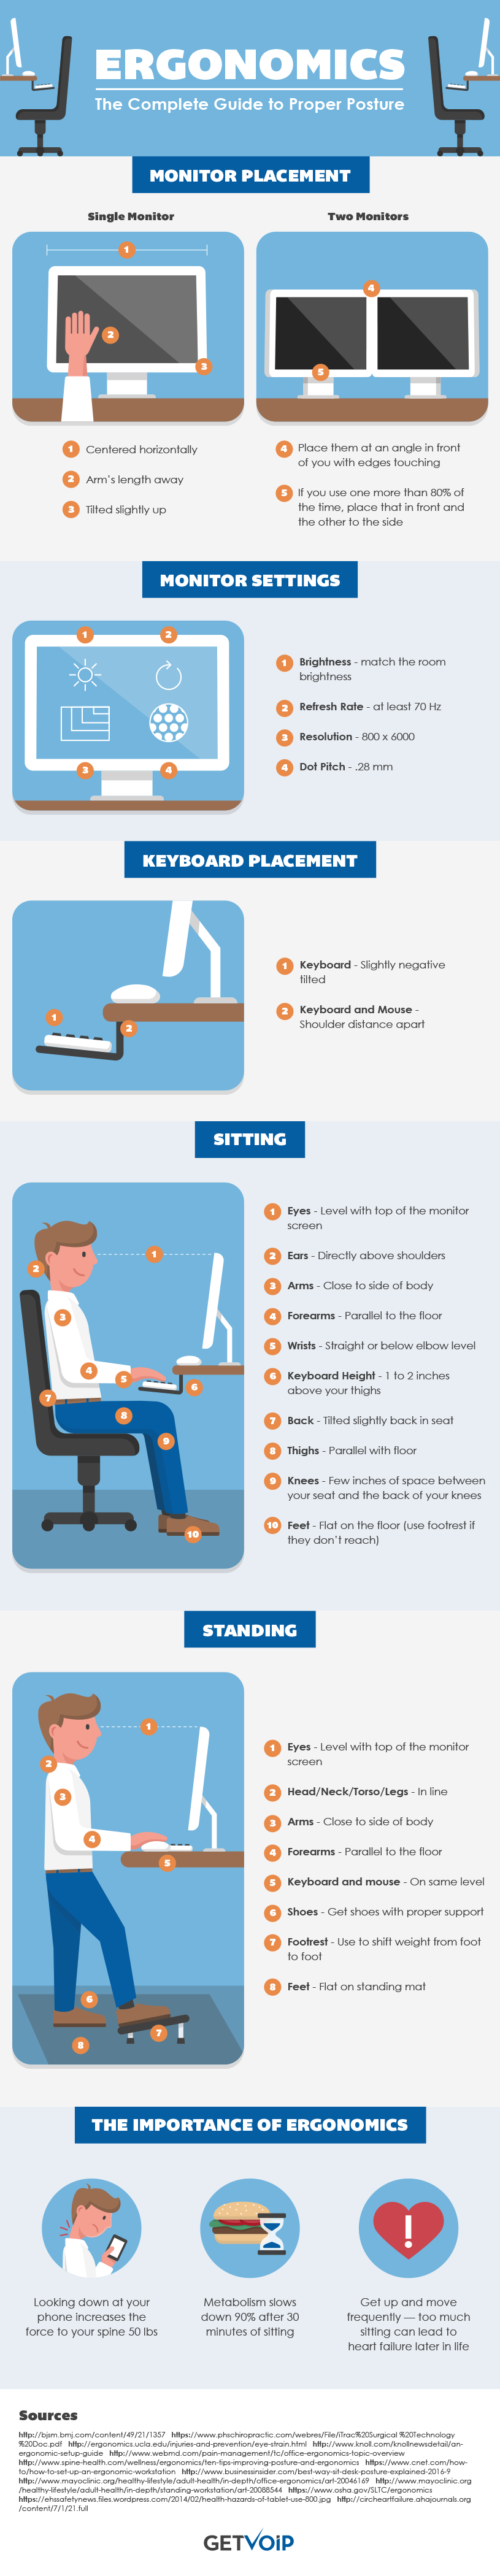 Ergonomics - the complete guide to proper posture